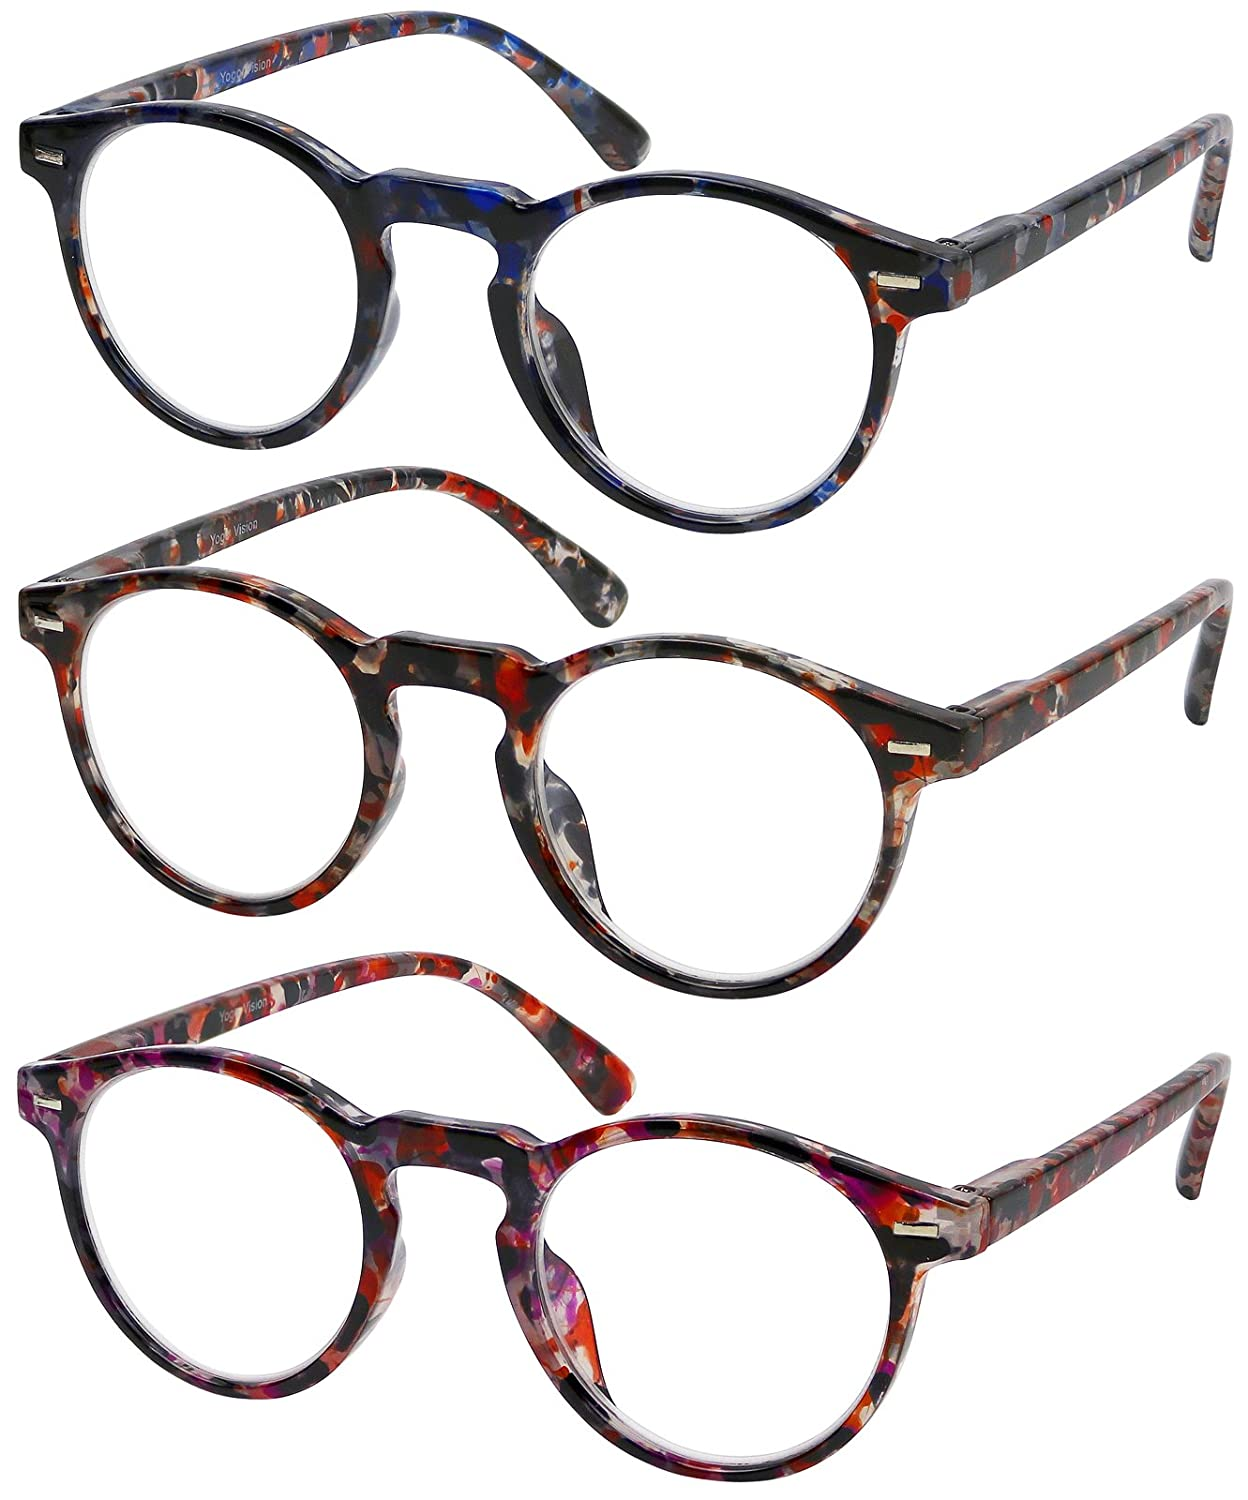 Reading Glasses 3 Pair High Quality Fashion Spring Hinge Marble Look Stylish Readers for Women